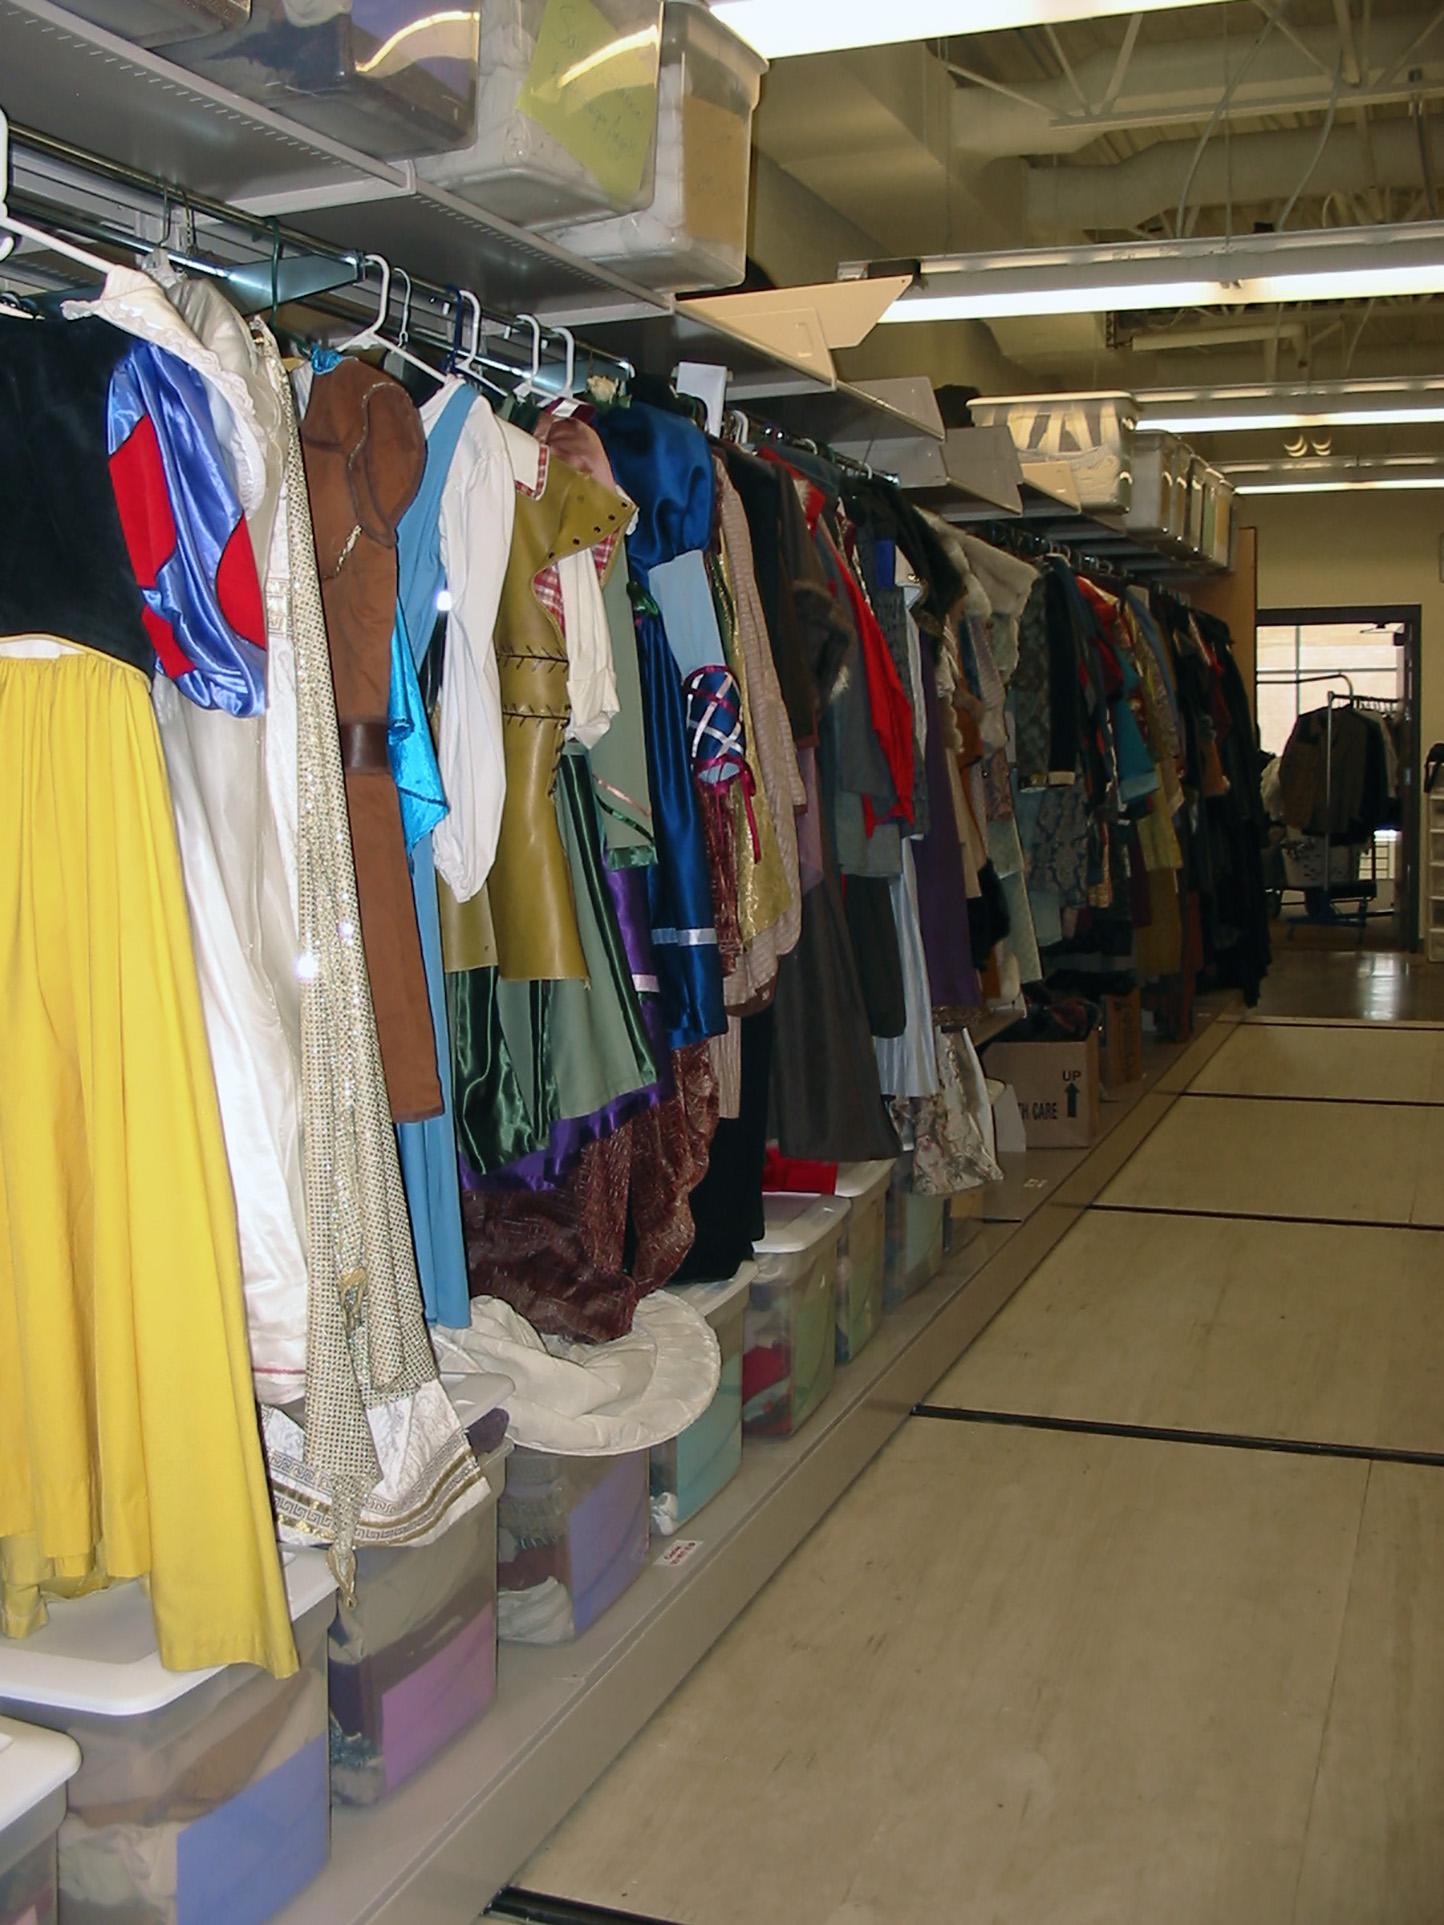 Shelving on top and bottom holds props while costumes hang from clothing rod at Brigham Young University Performing Arts Center